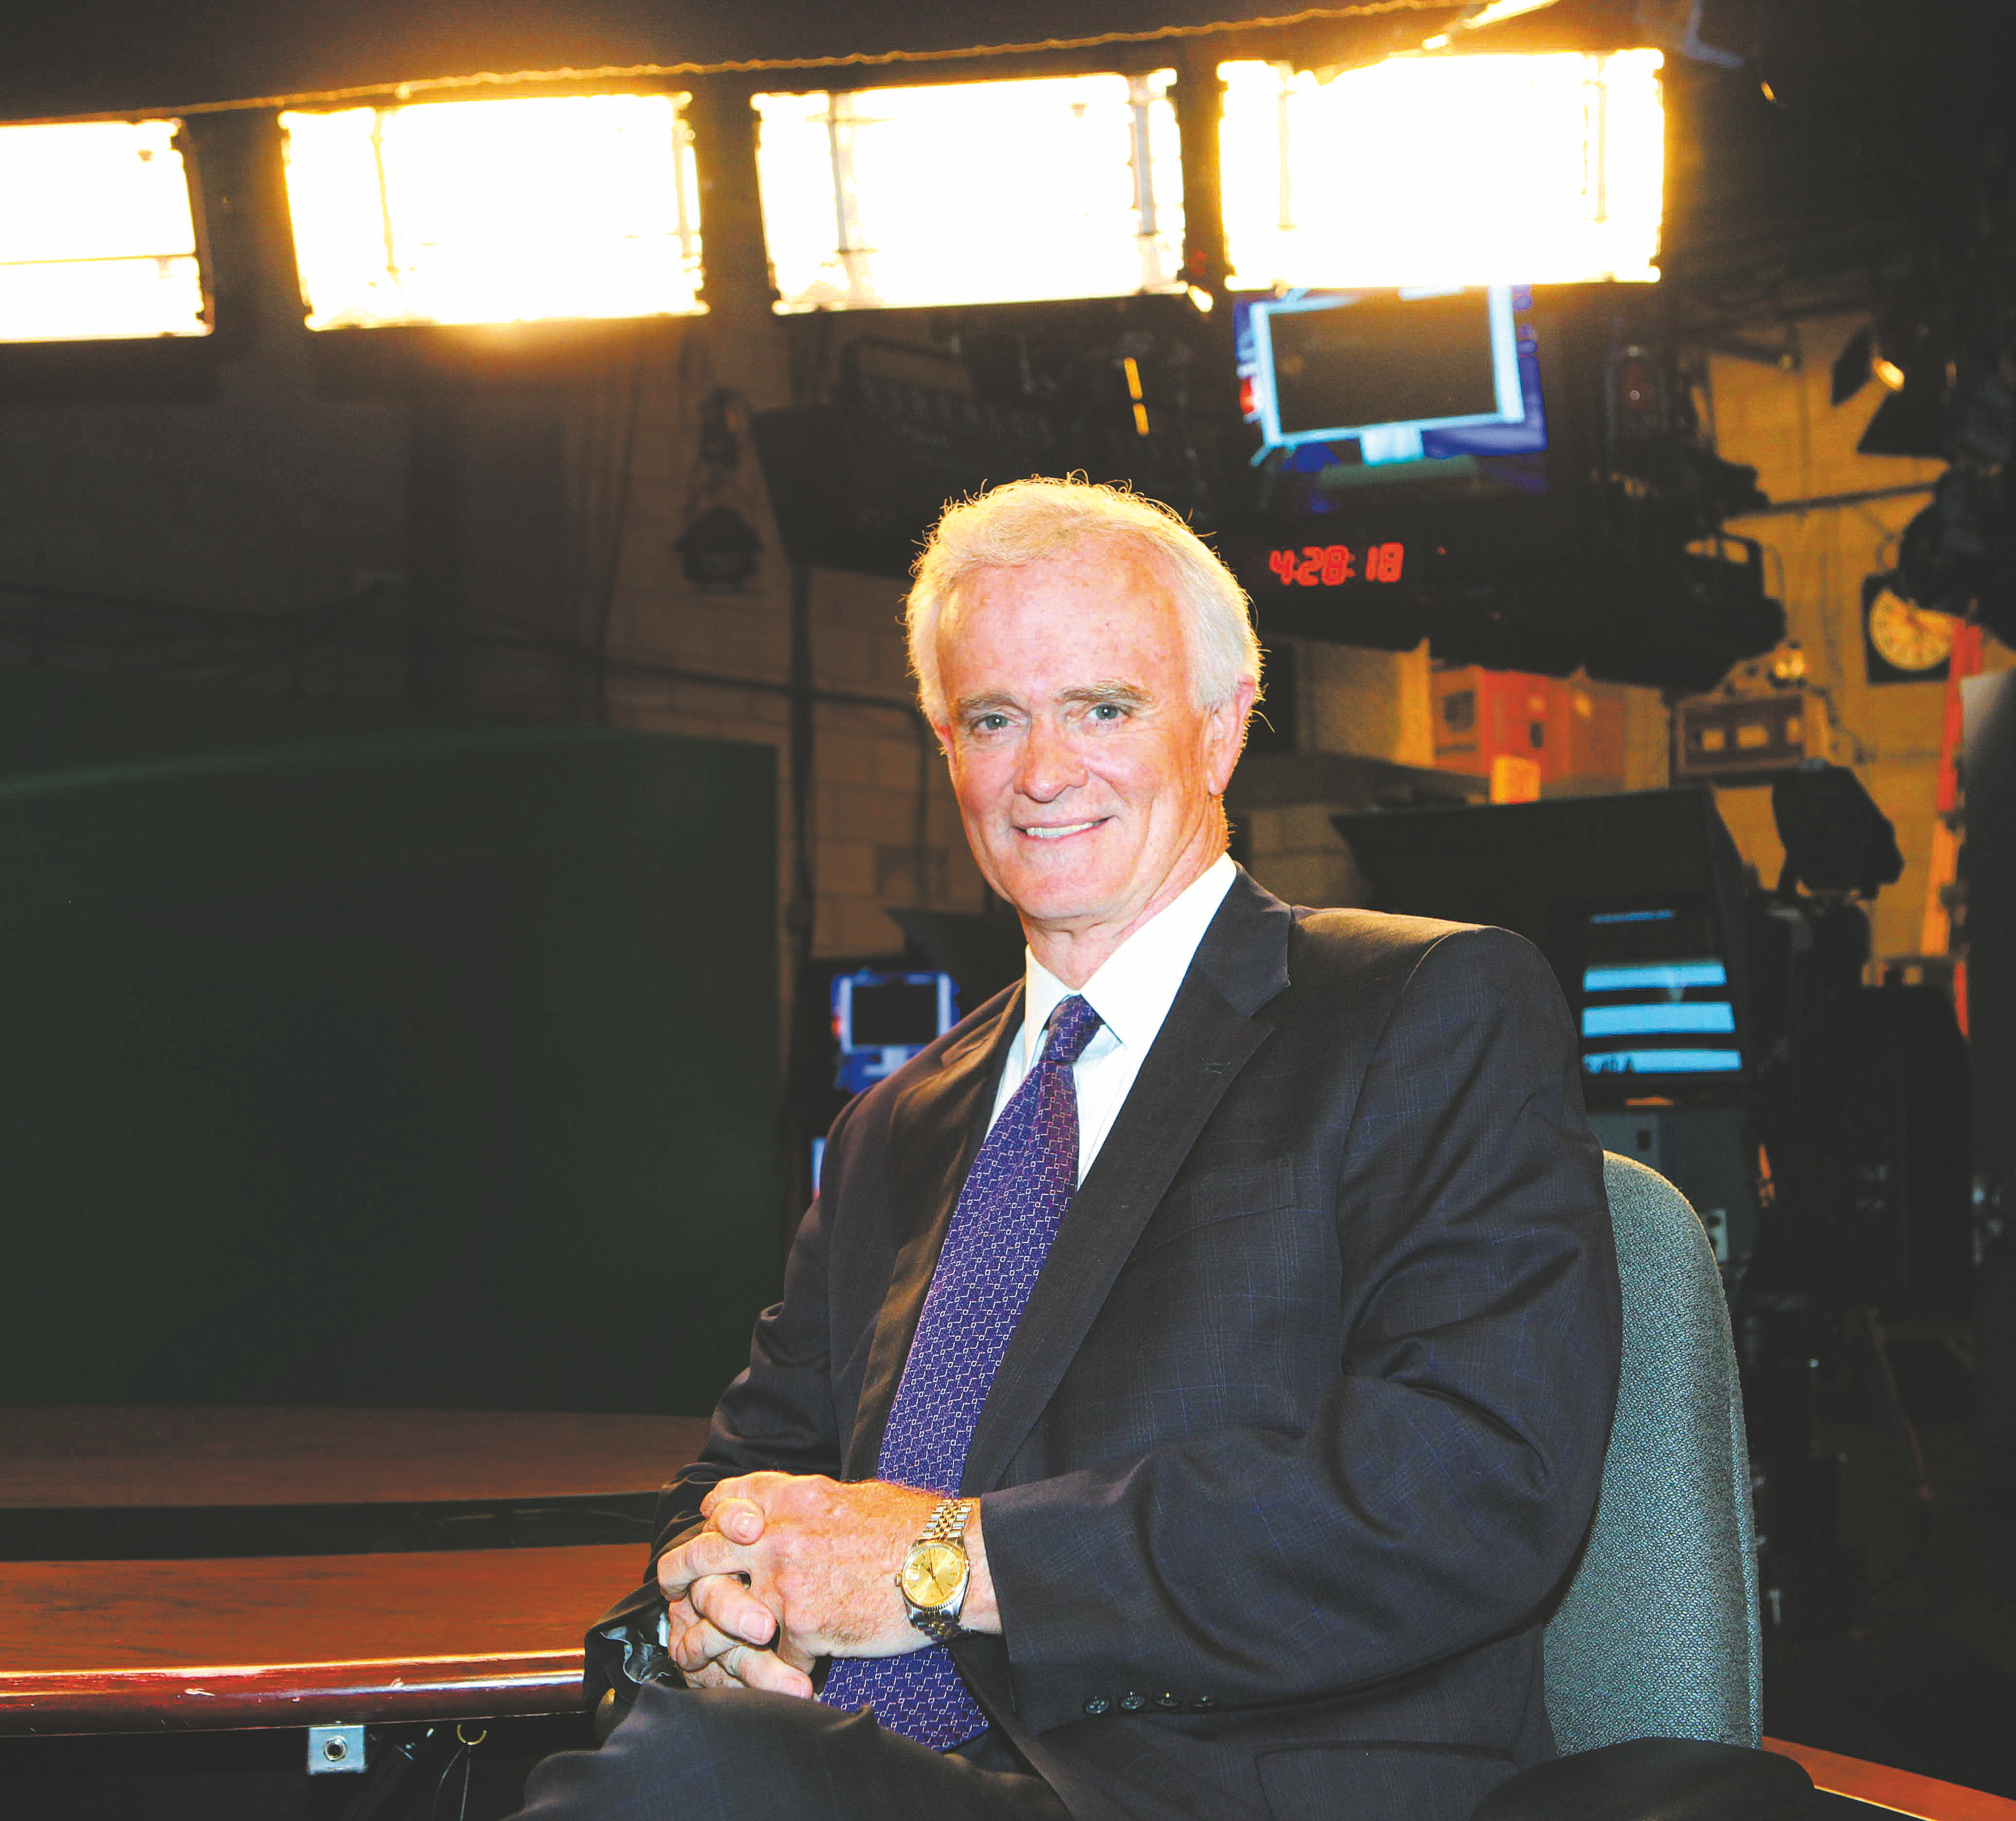 Buffalo sports anchors have been coming and going with more frequency in recent years. Channel 2's Ed Kilgore, left, is the latest to announce his departure.